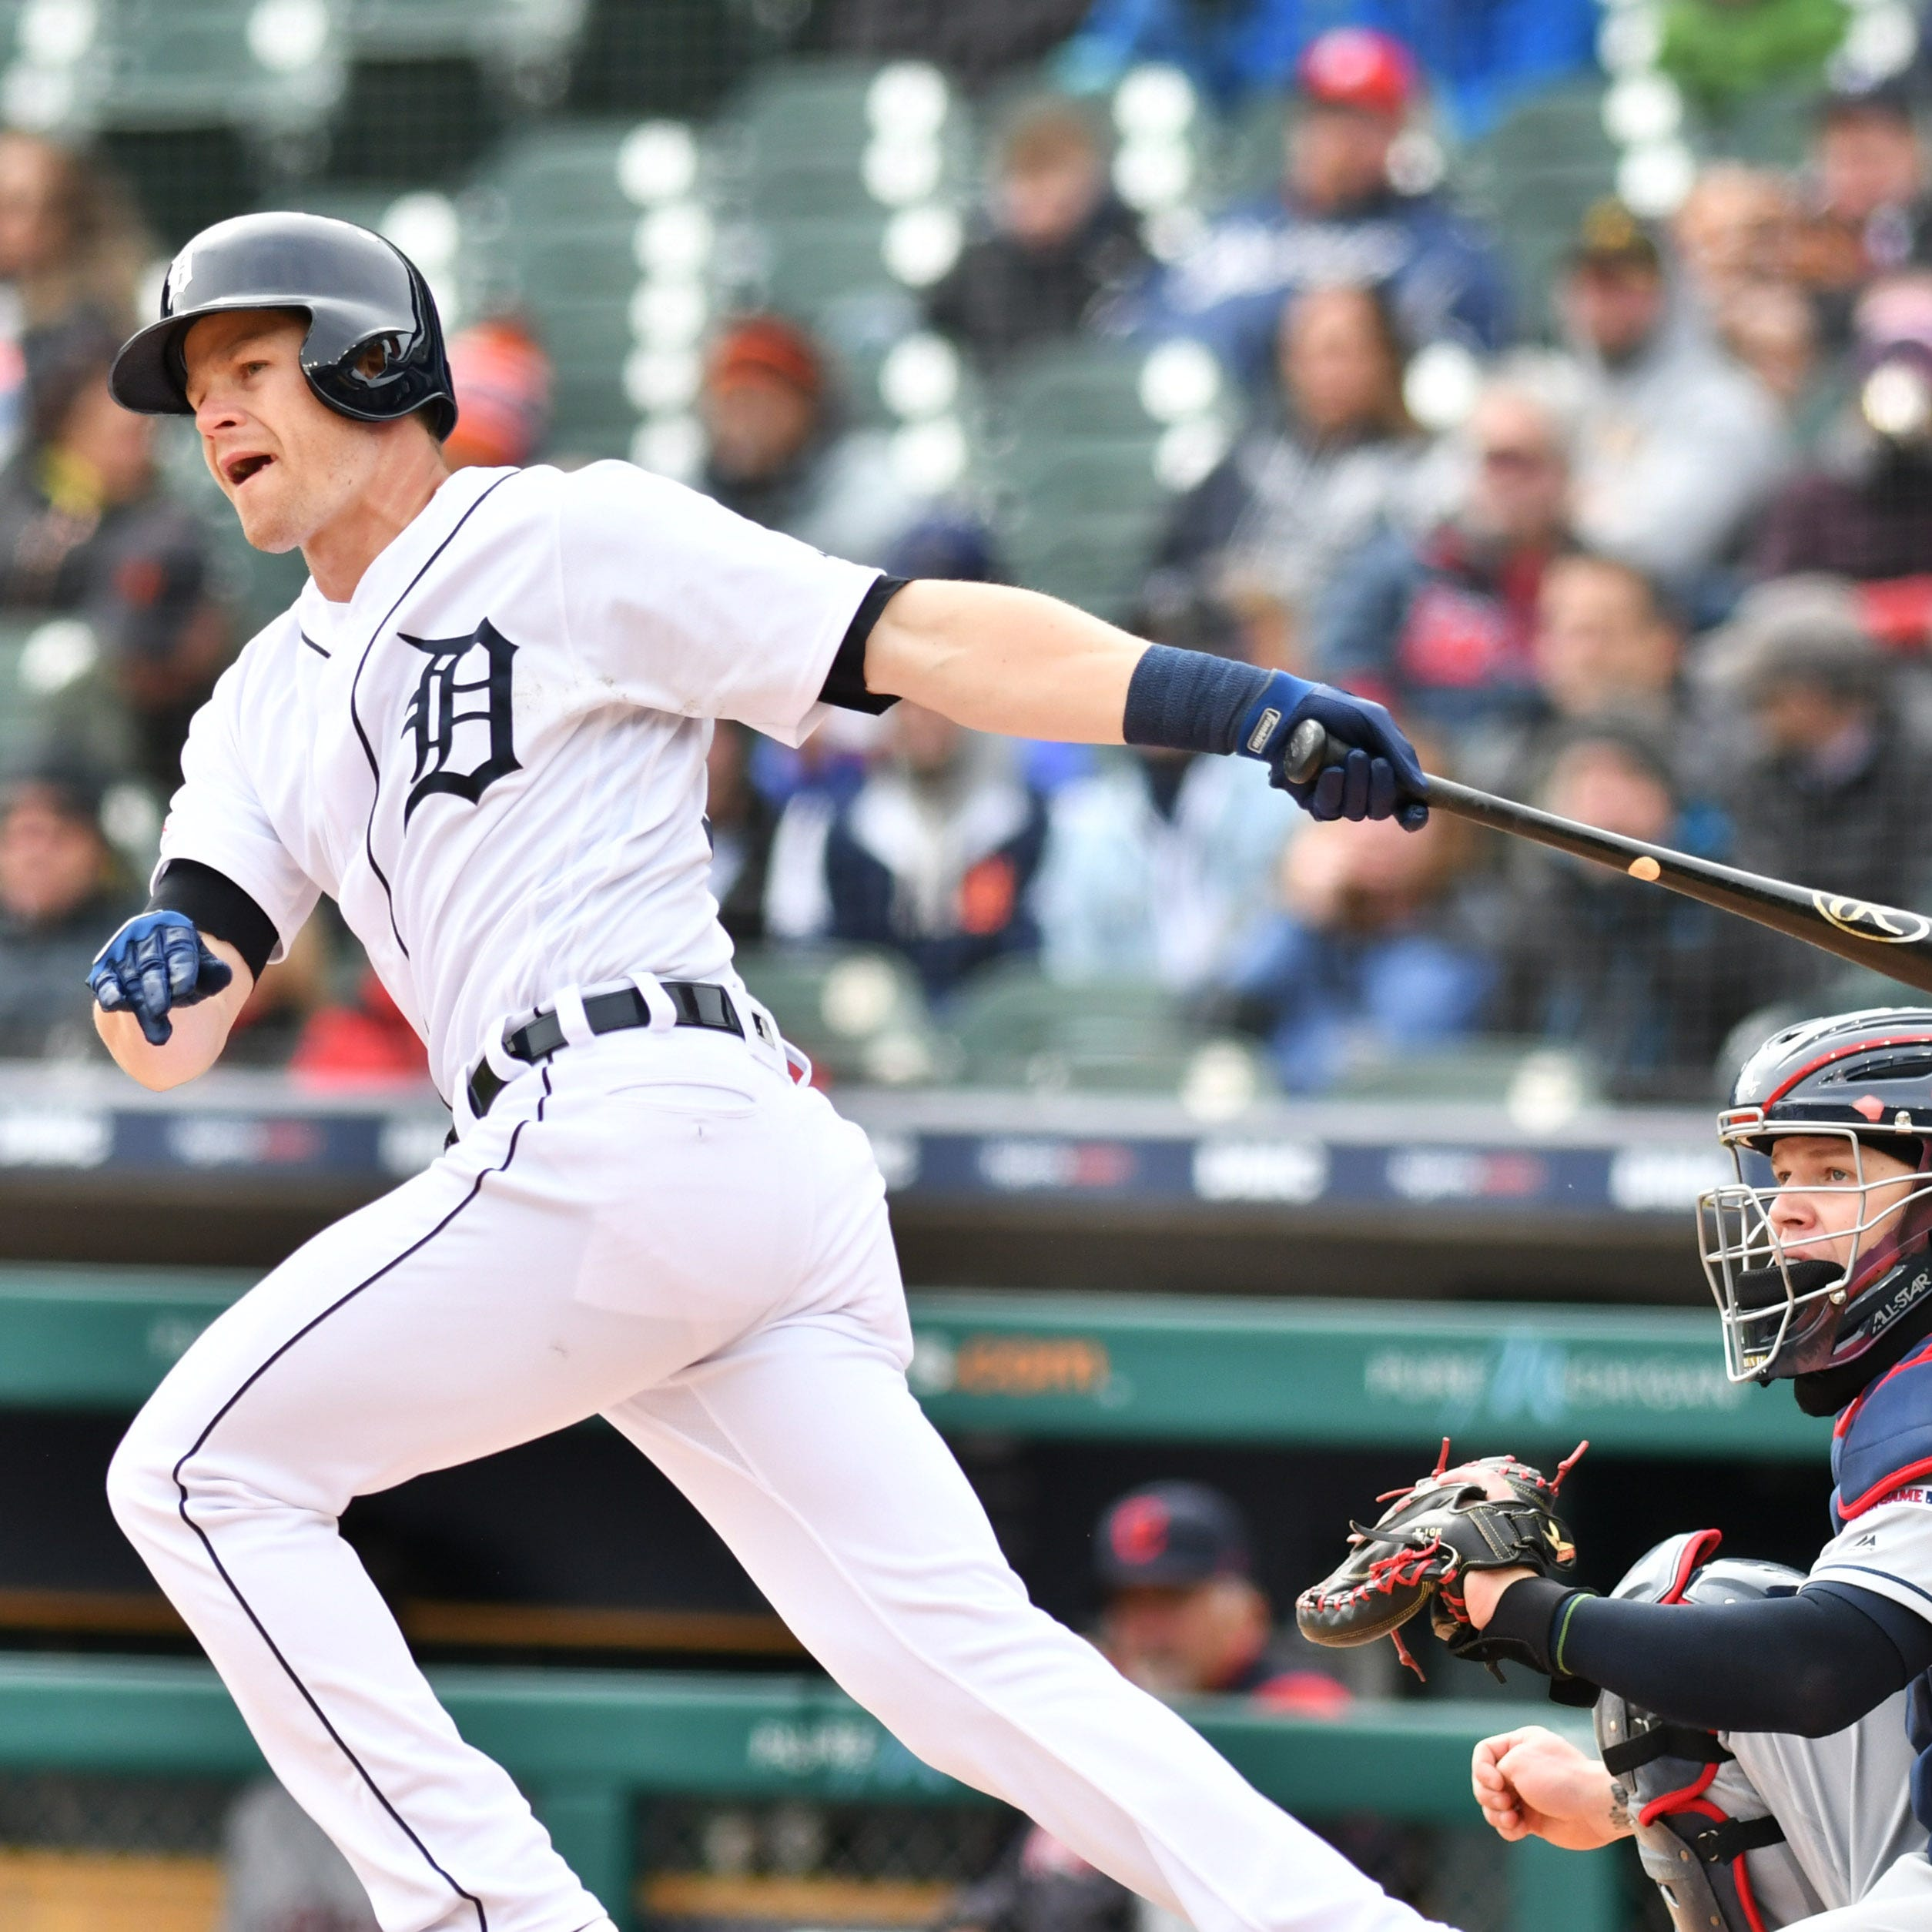 Tigers' Gordon Beckham reaches 1,000-game mark in same park he made big-league debut